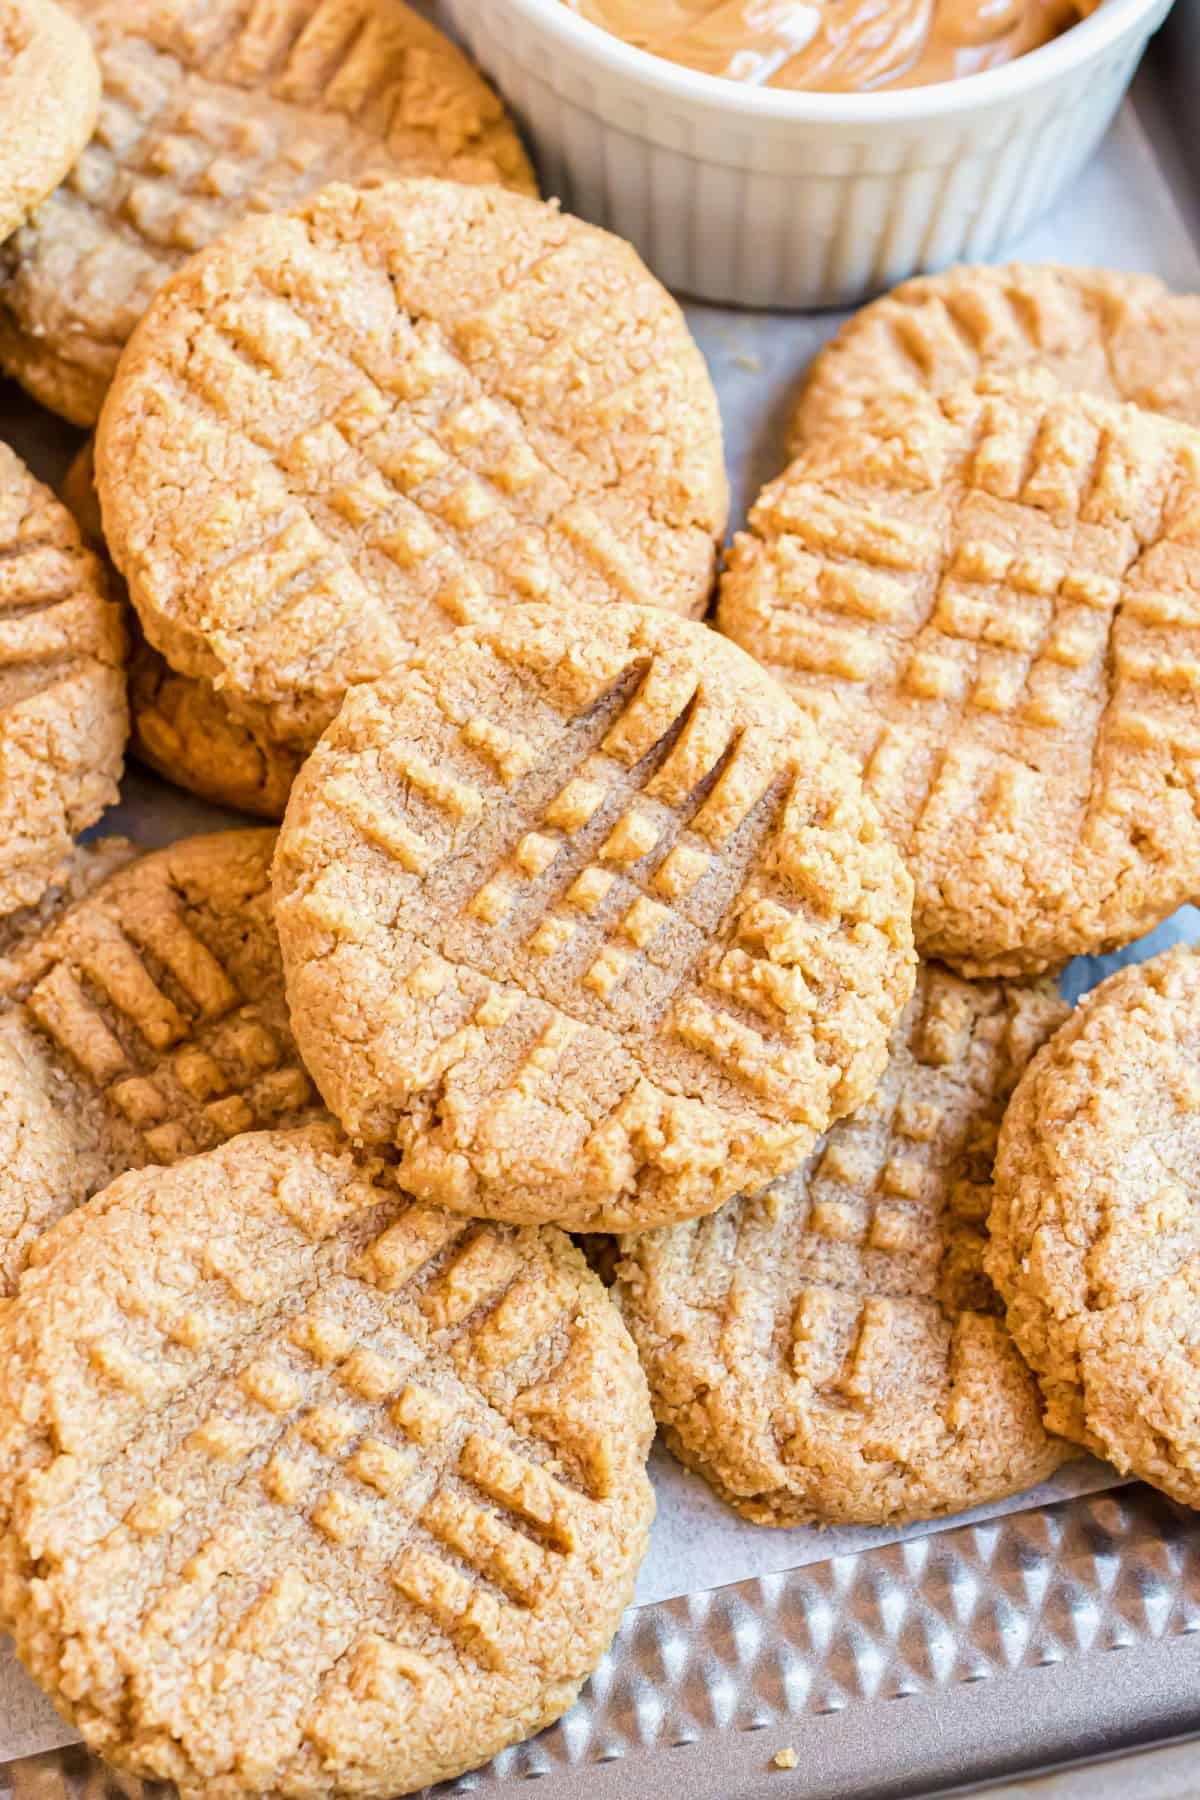 Peanut butter cookies served in a stack.